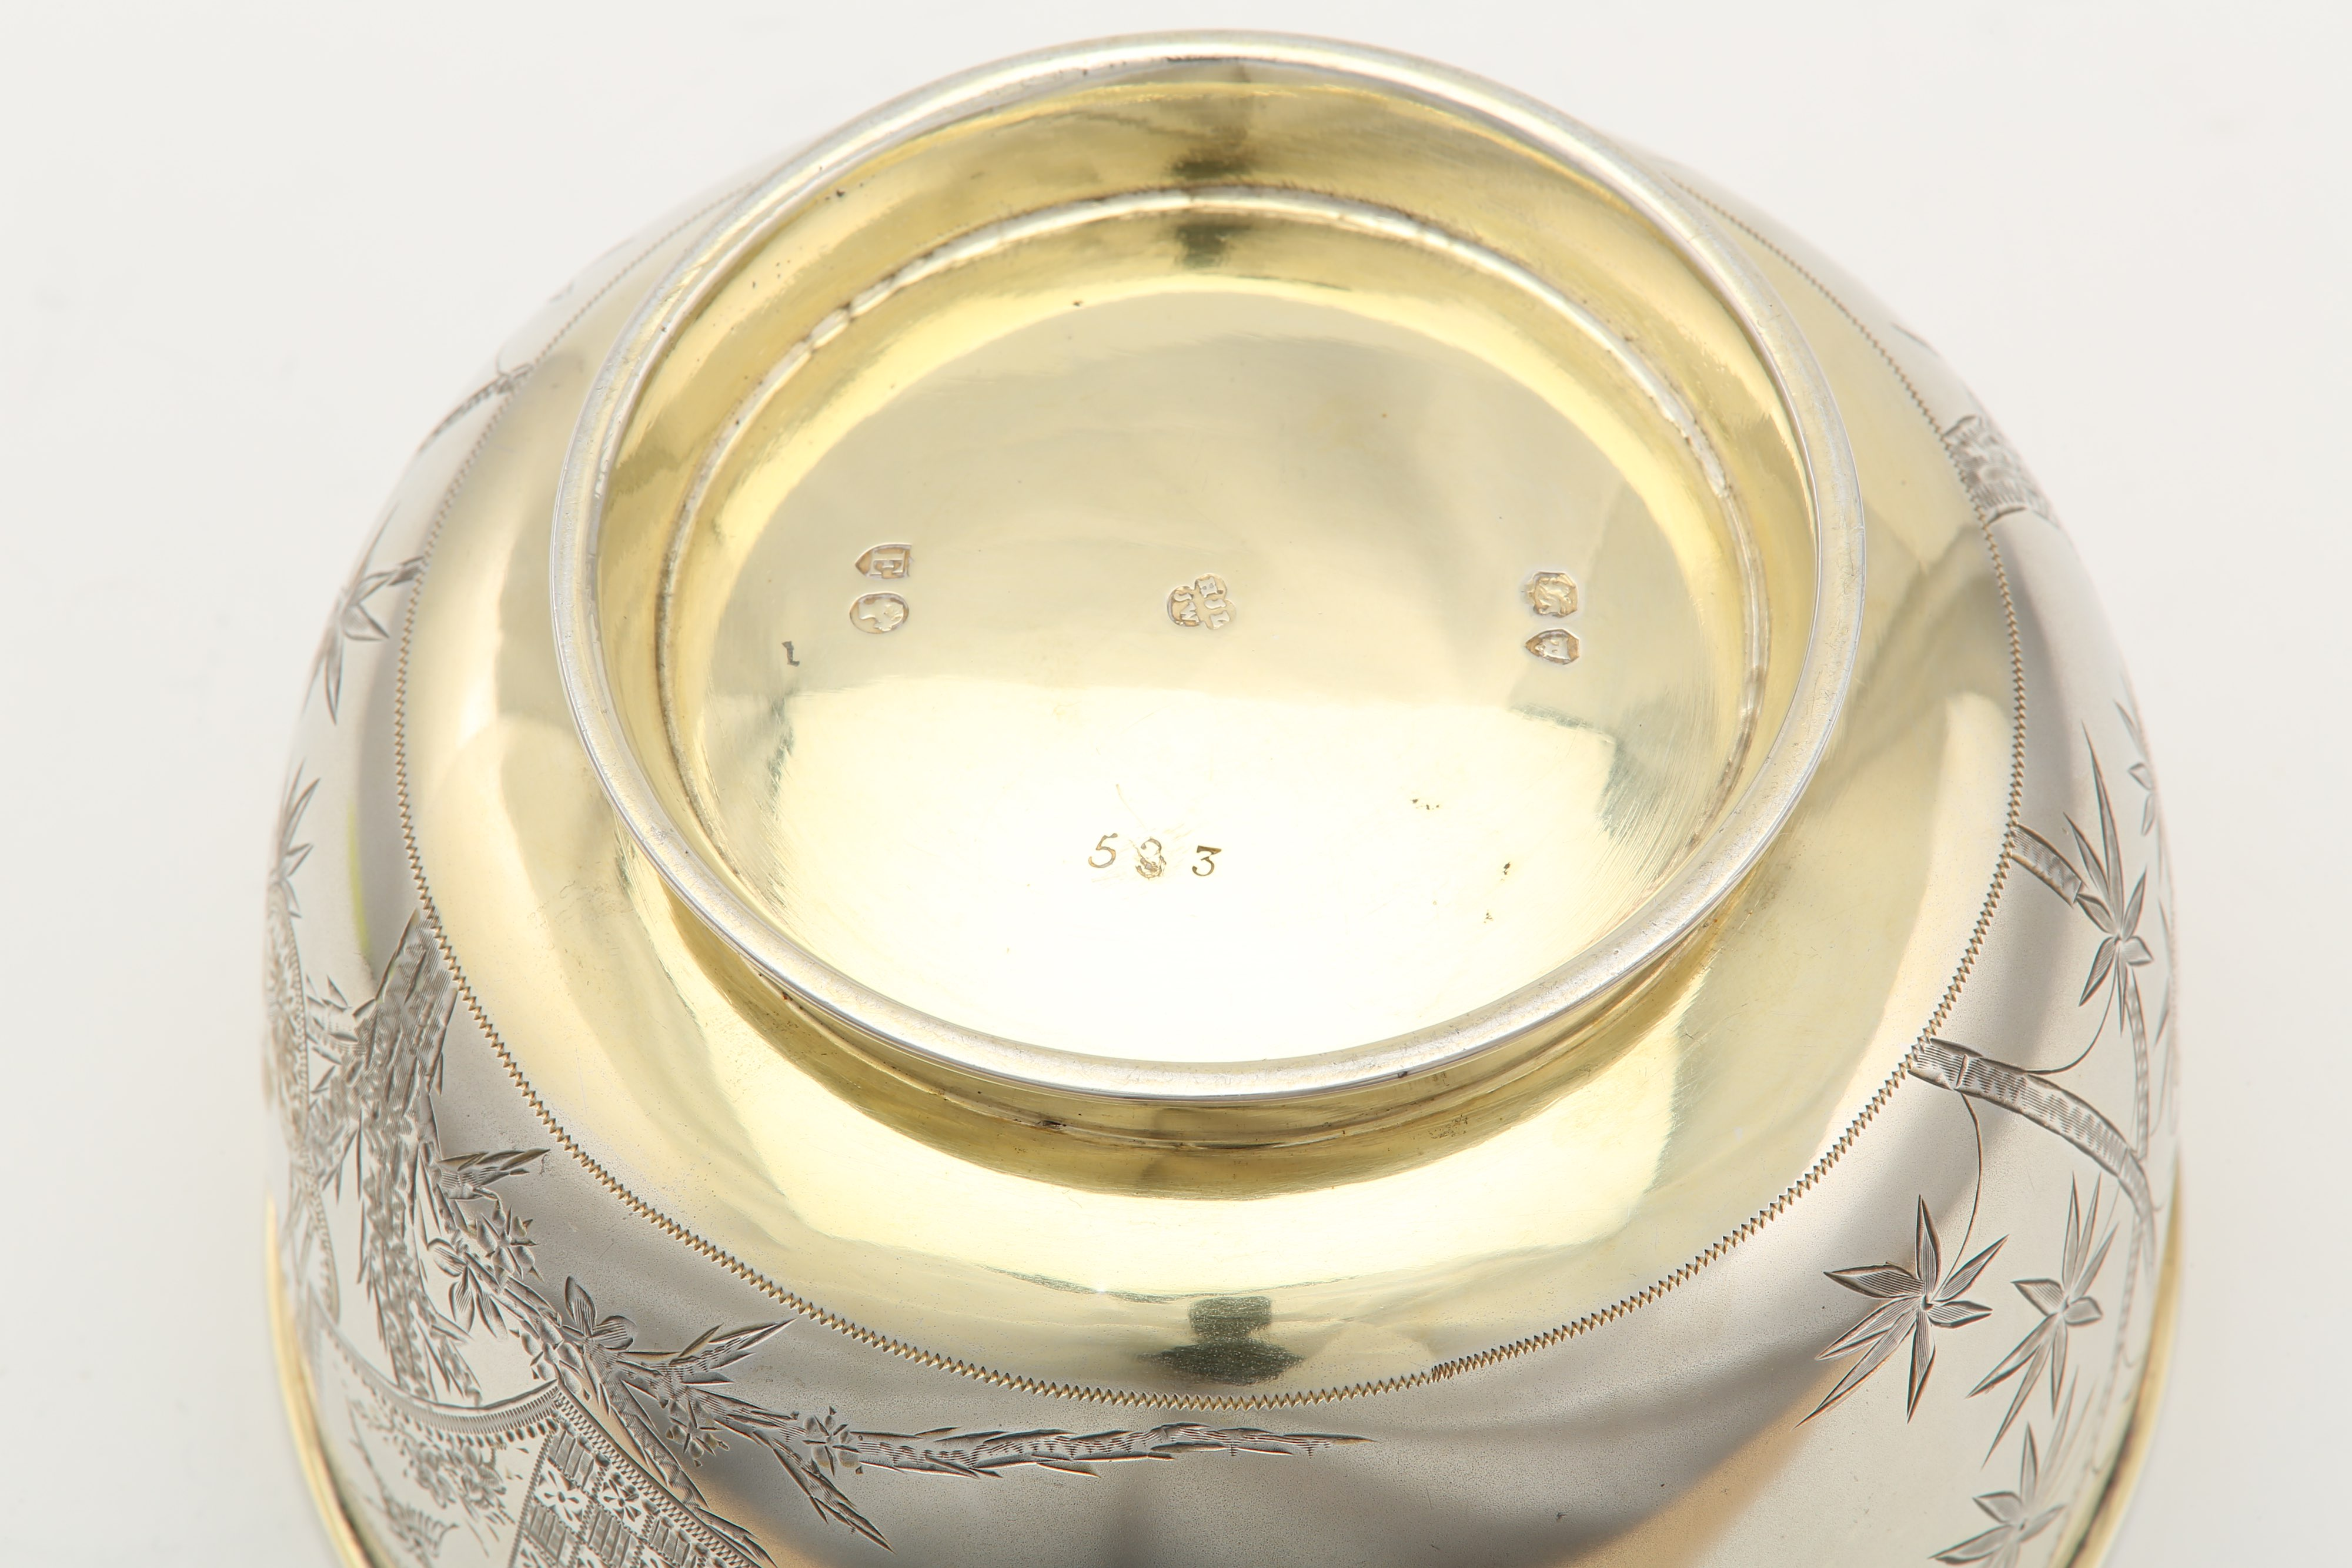 Lot 23 - A Victorian parcel gilt sterling silver sugar bowl, London 1880 by Henry John Lias & James Wakely